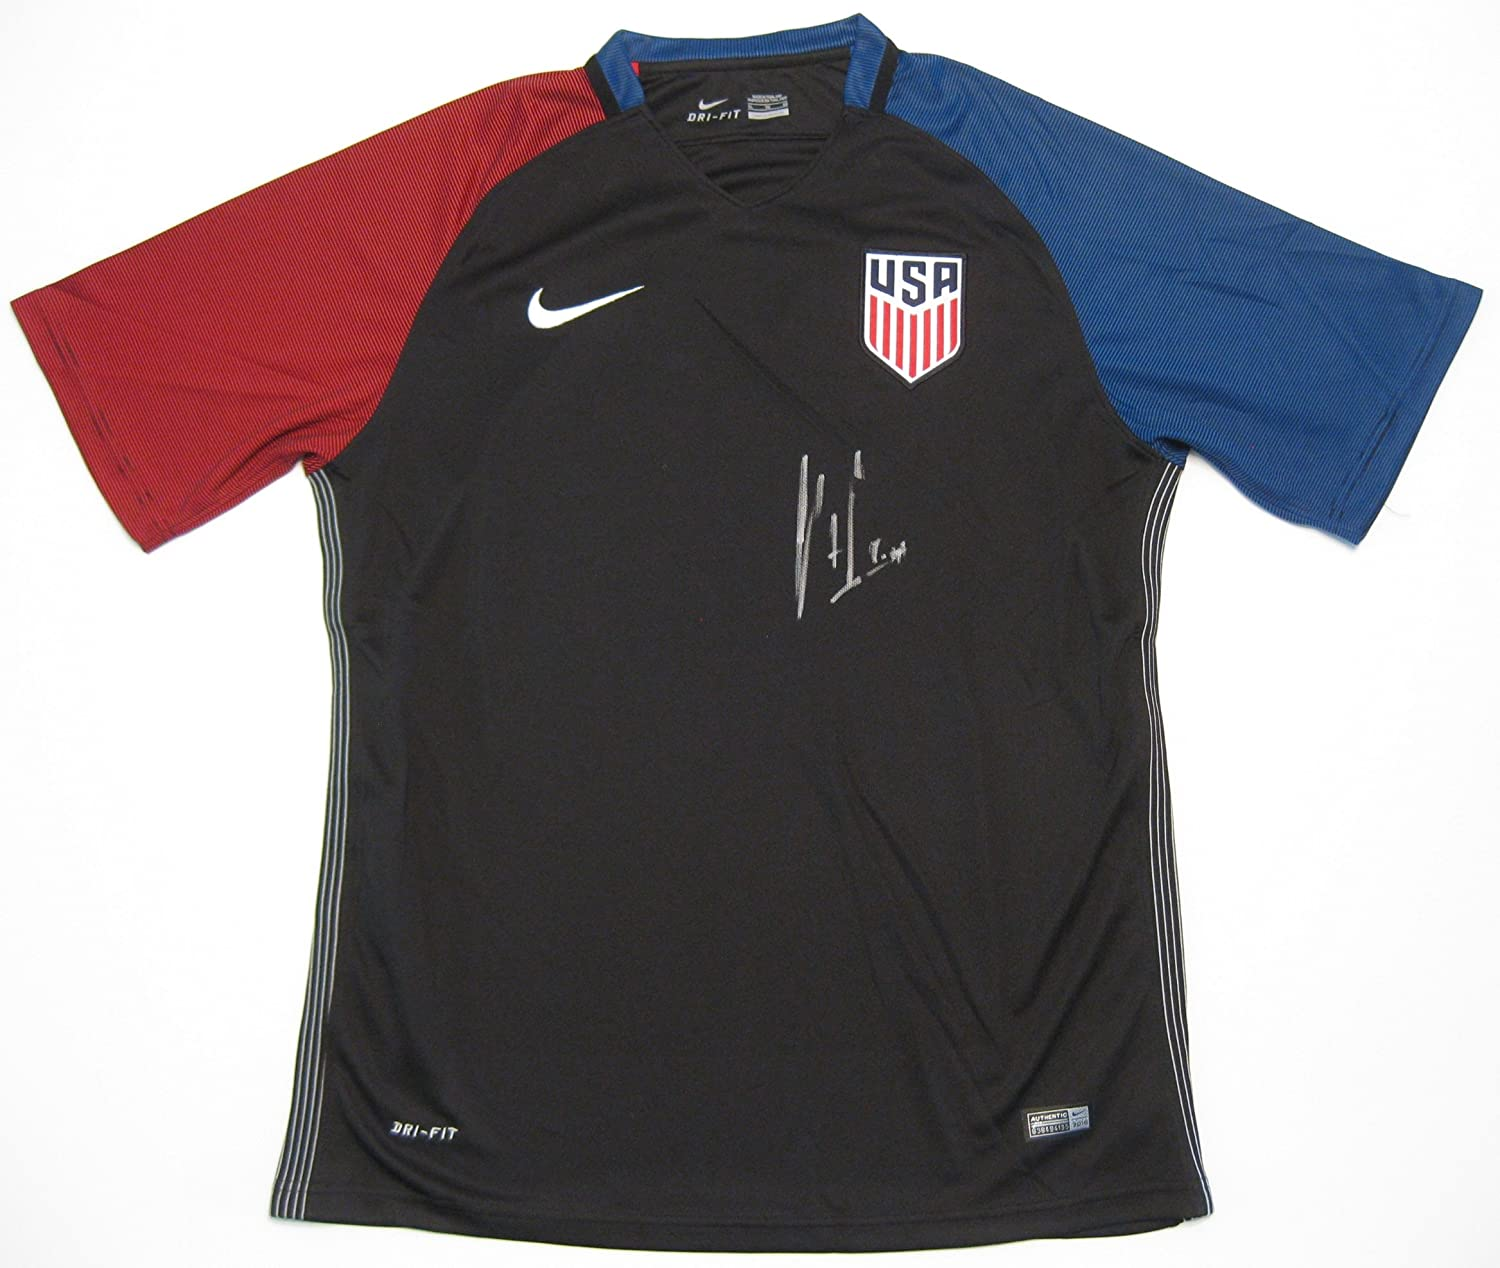 reputable site 950ee 0cdaa Clint Dempsey USA National Mens Soccer Team, Signed ...